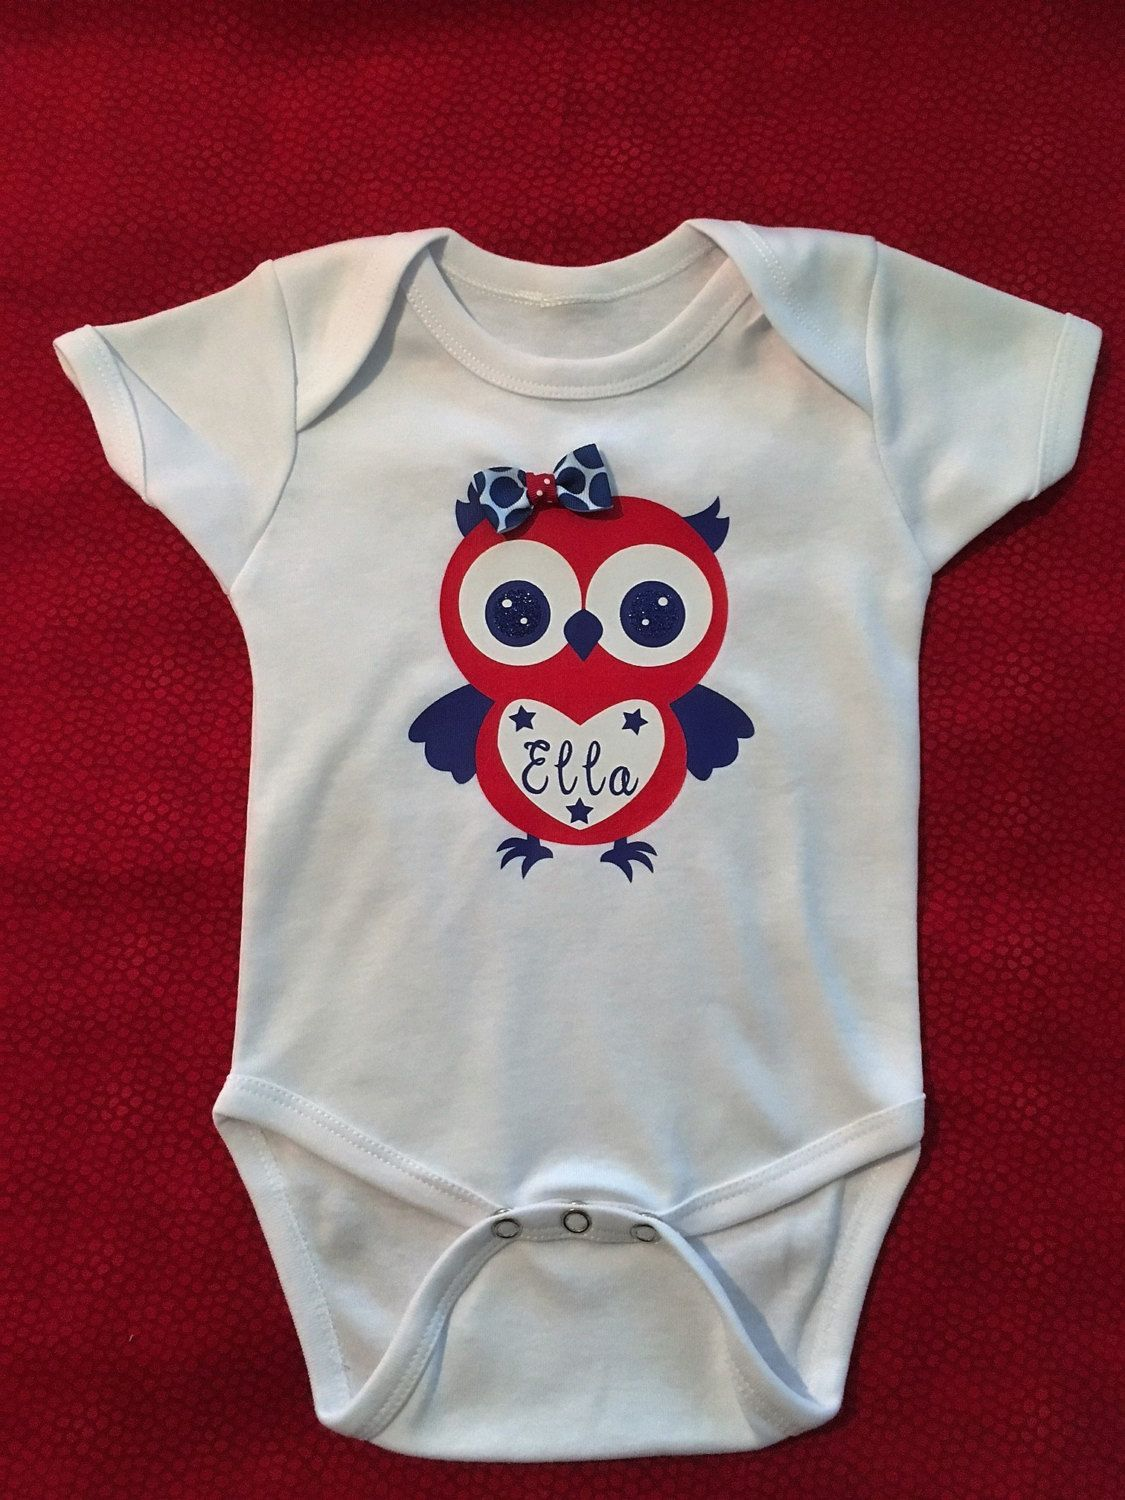 Infant Girls July 4th Monogrammed Onesie by CayannaLueli on Etsy